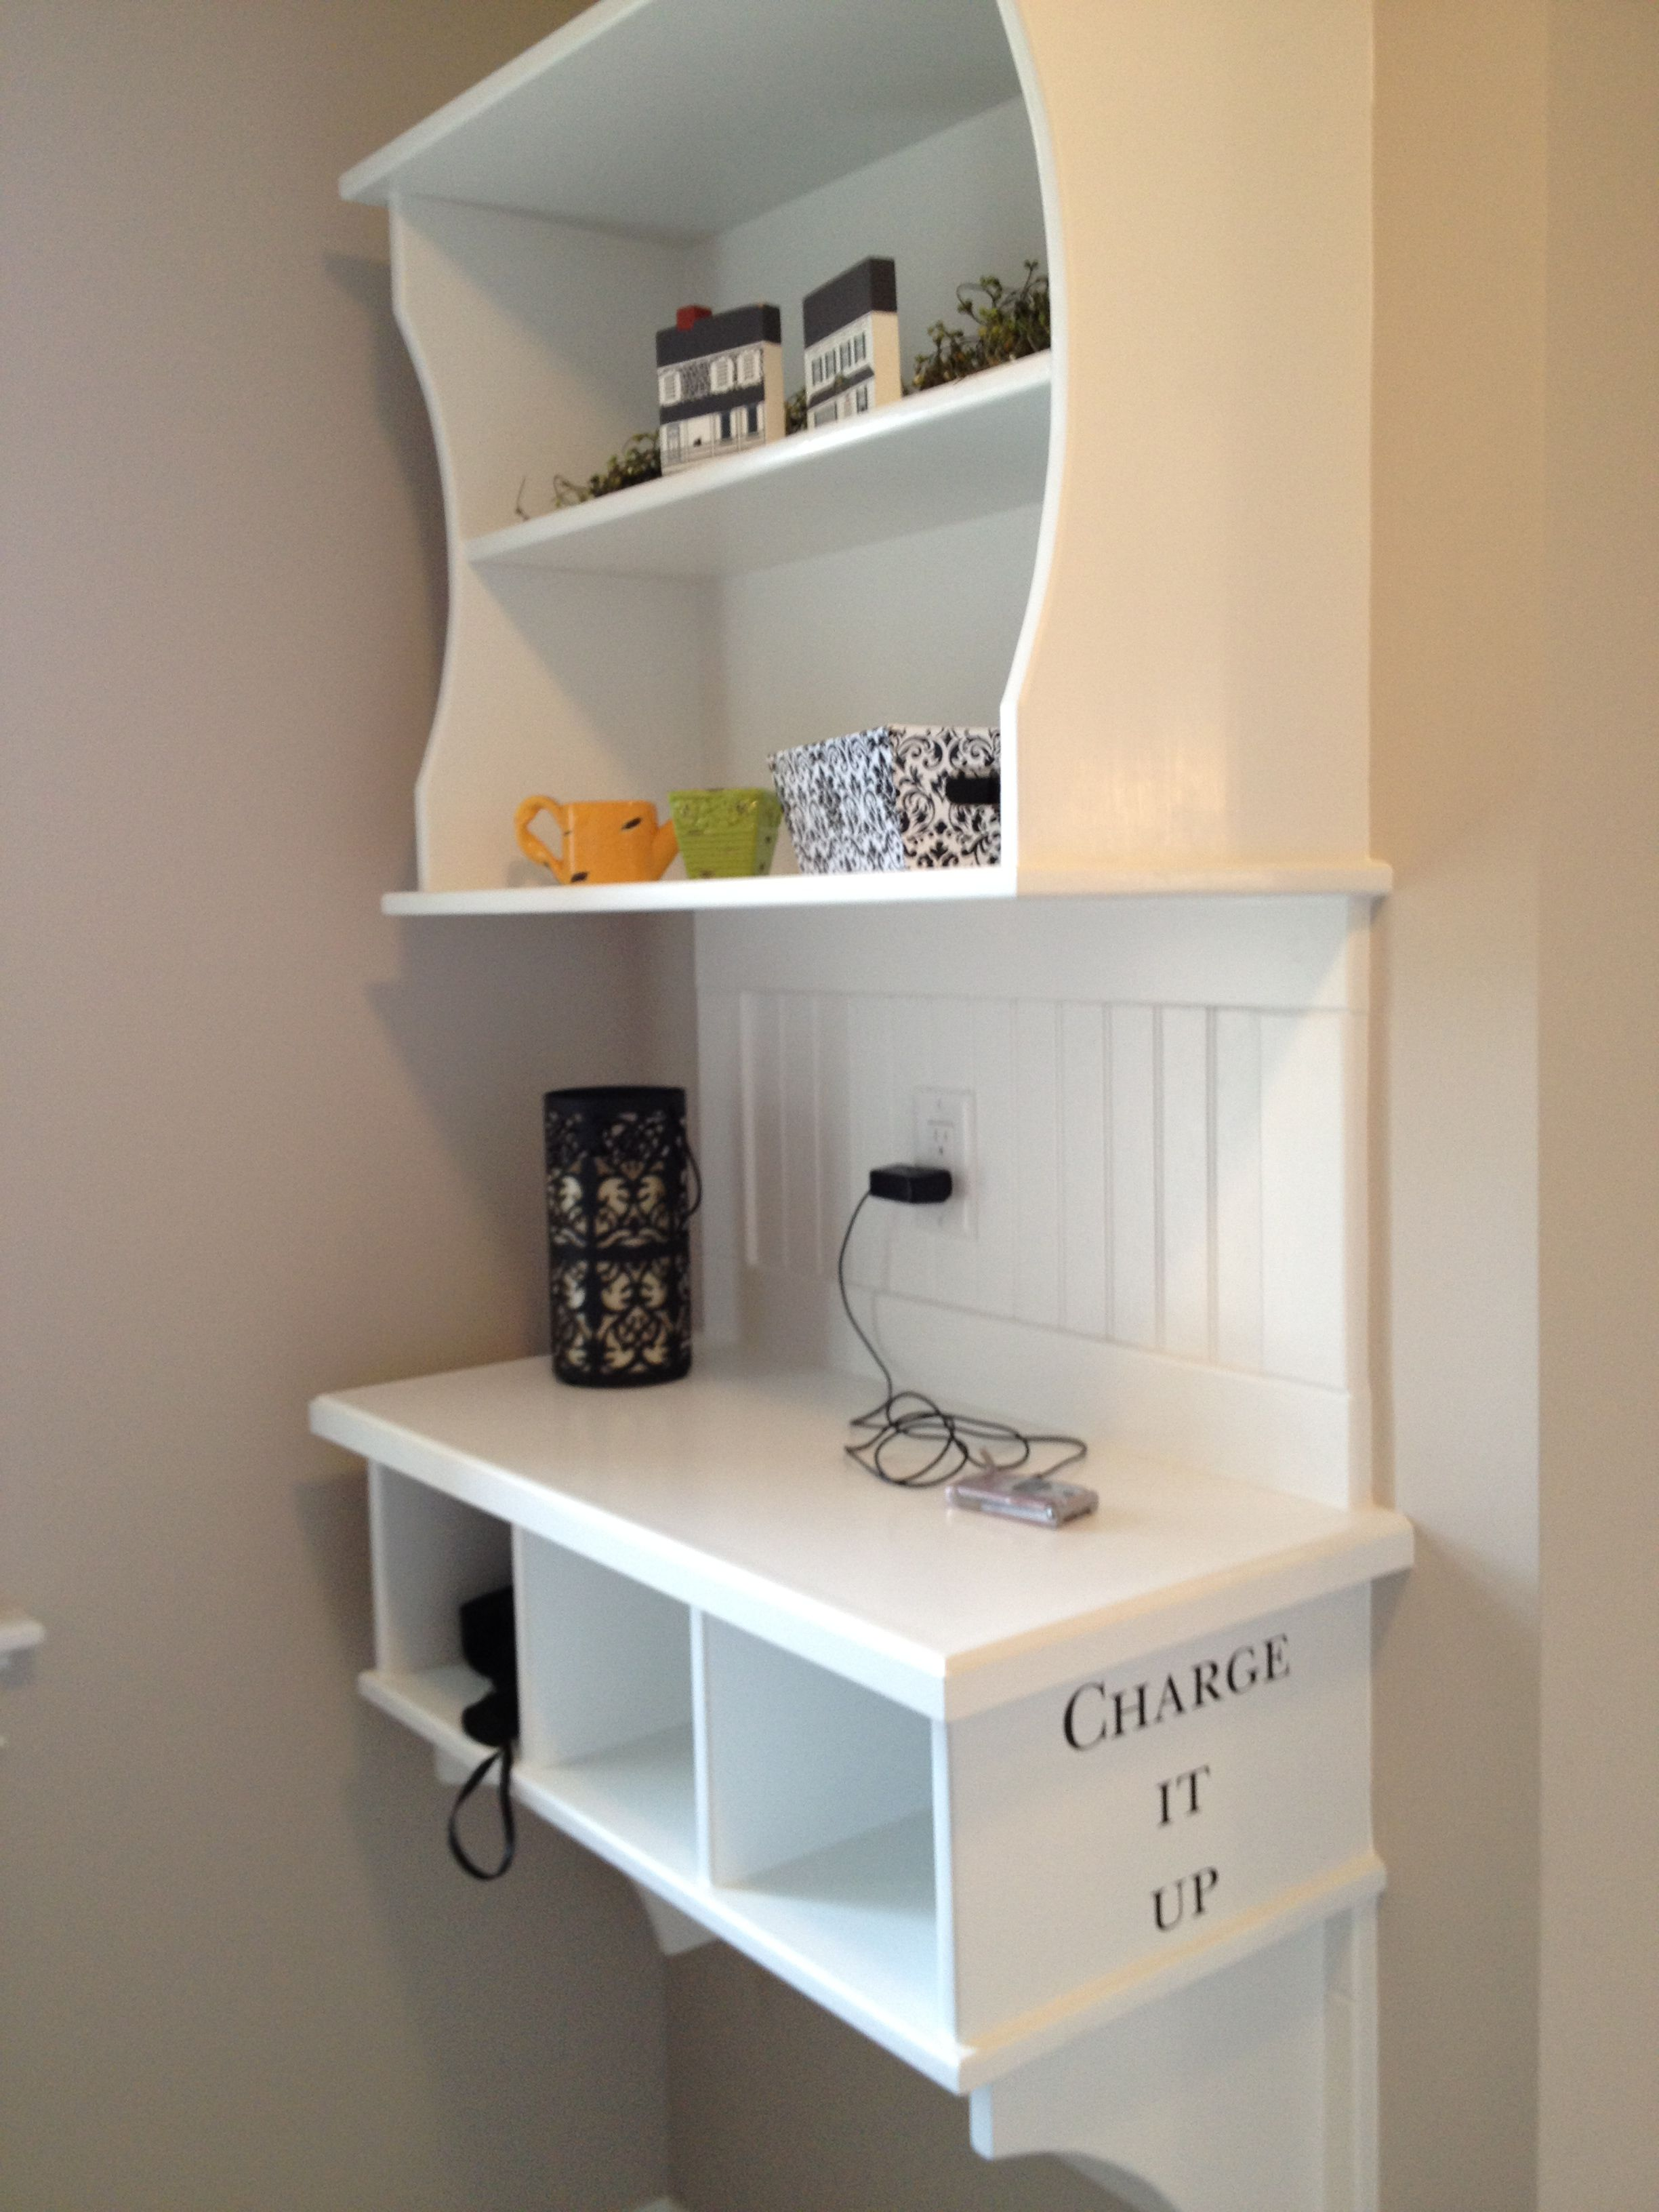 Charging Station Shelf Cute Idea Charging Station In Mudroom Jt Creating My Dream